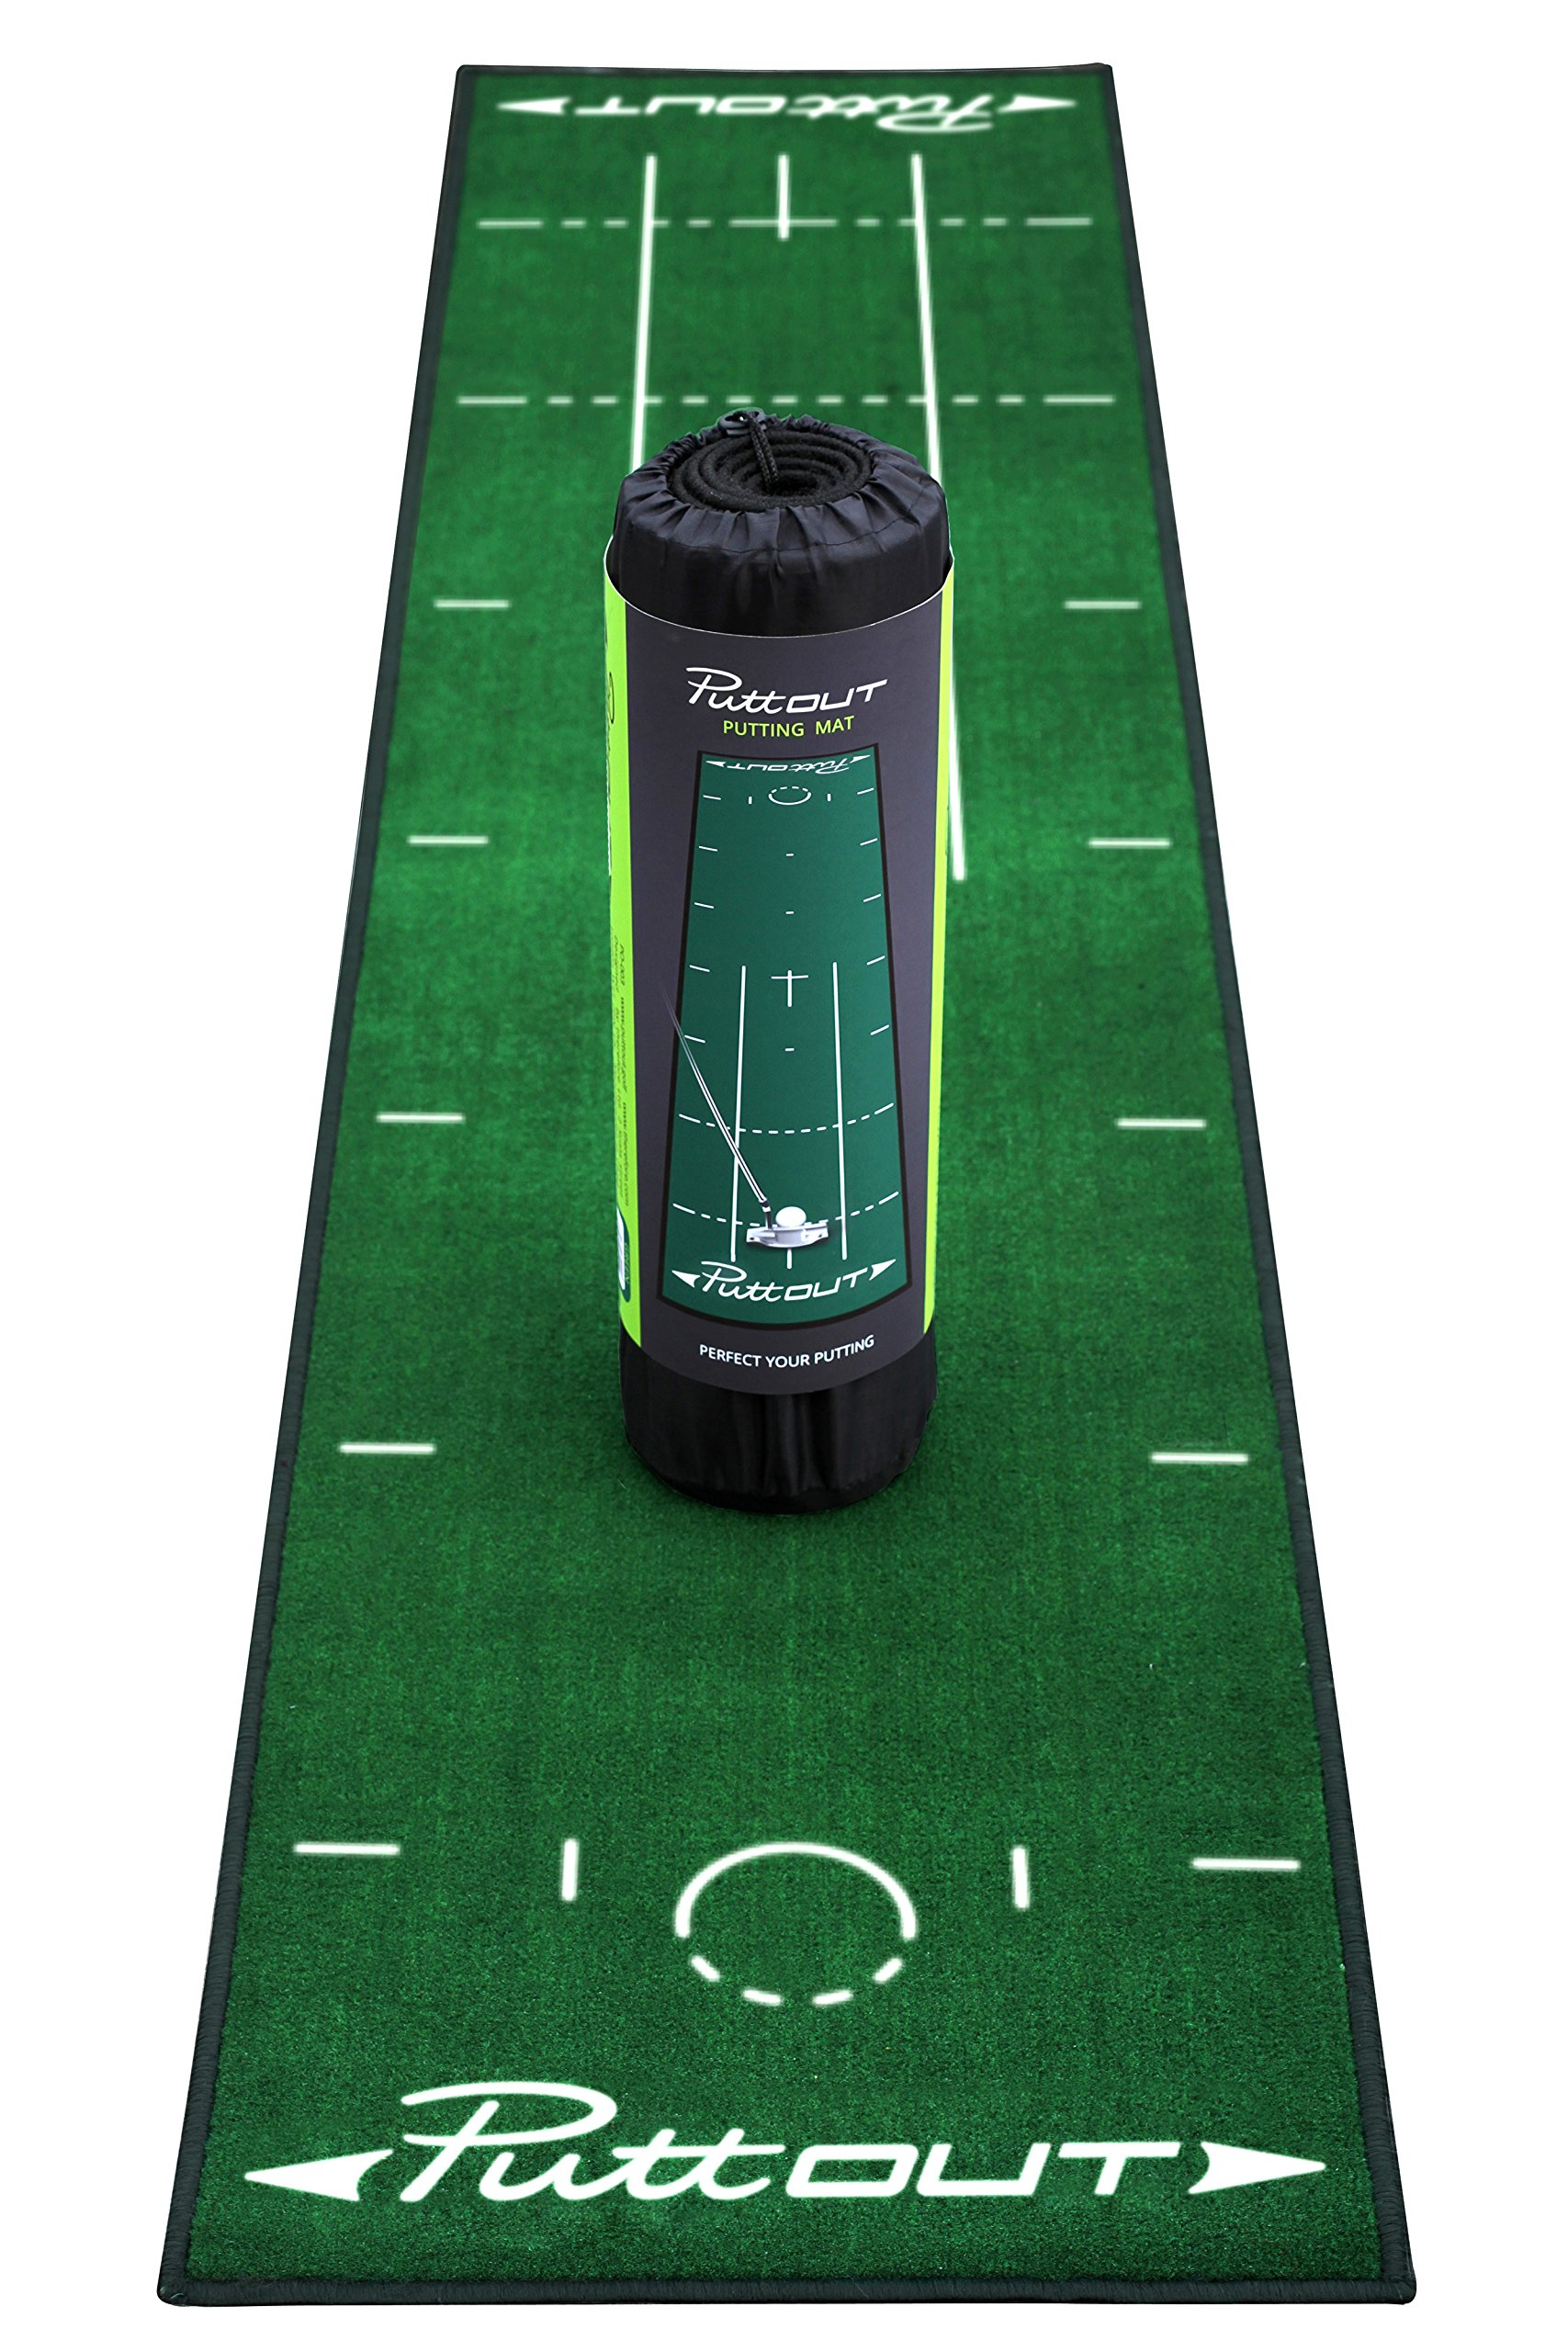 PuttOut Pro Golf Putting Mat - Perfect Your Putting (7.87-feet x 1.64-feet) (Green) by PuttOut